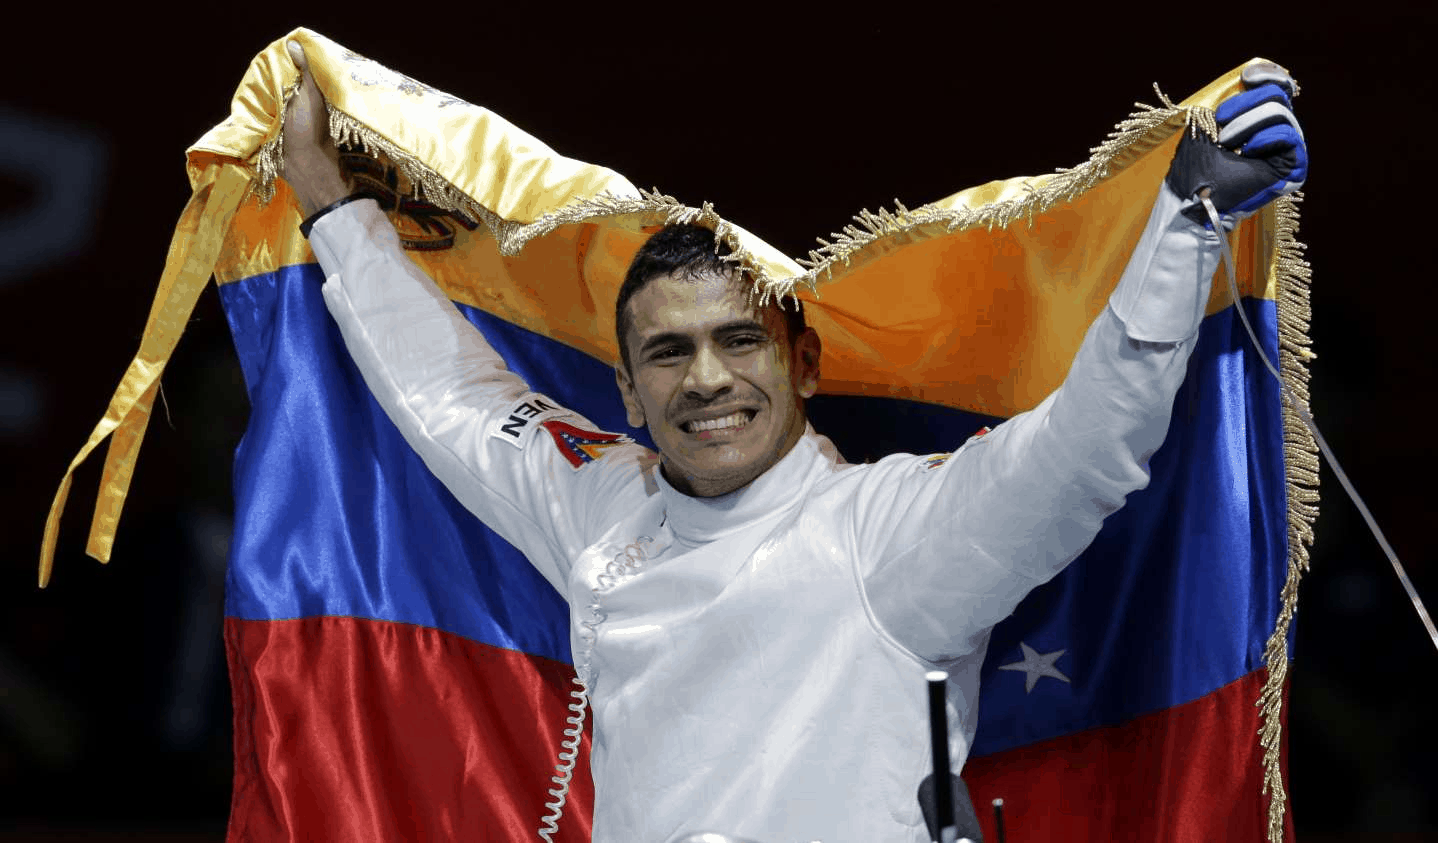 Venezuelan Olympian delivers food to support family. 3